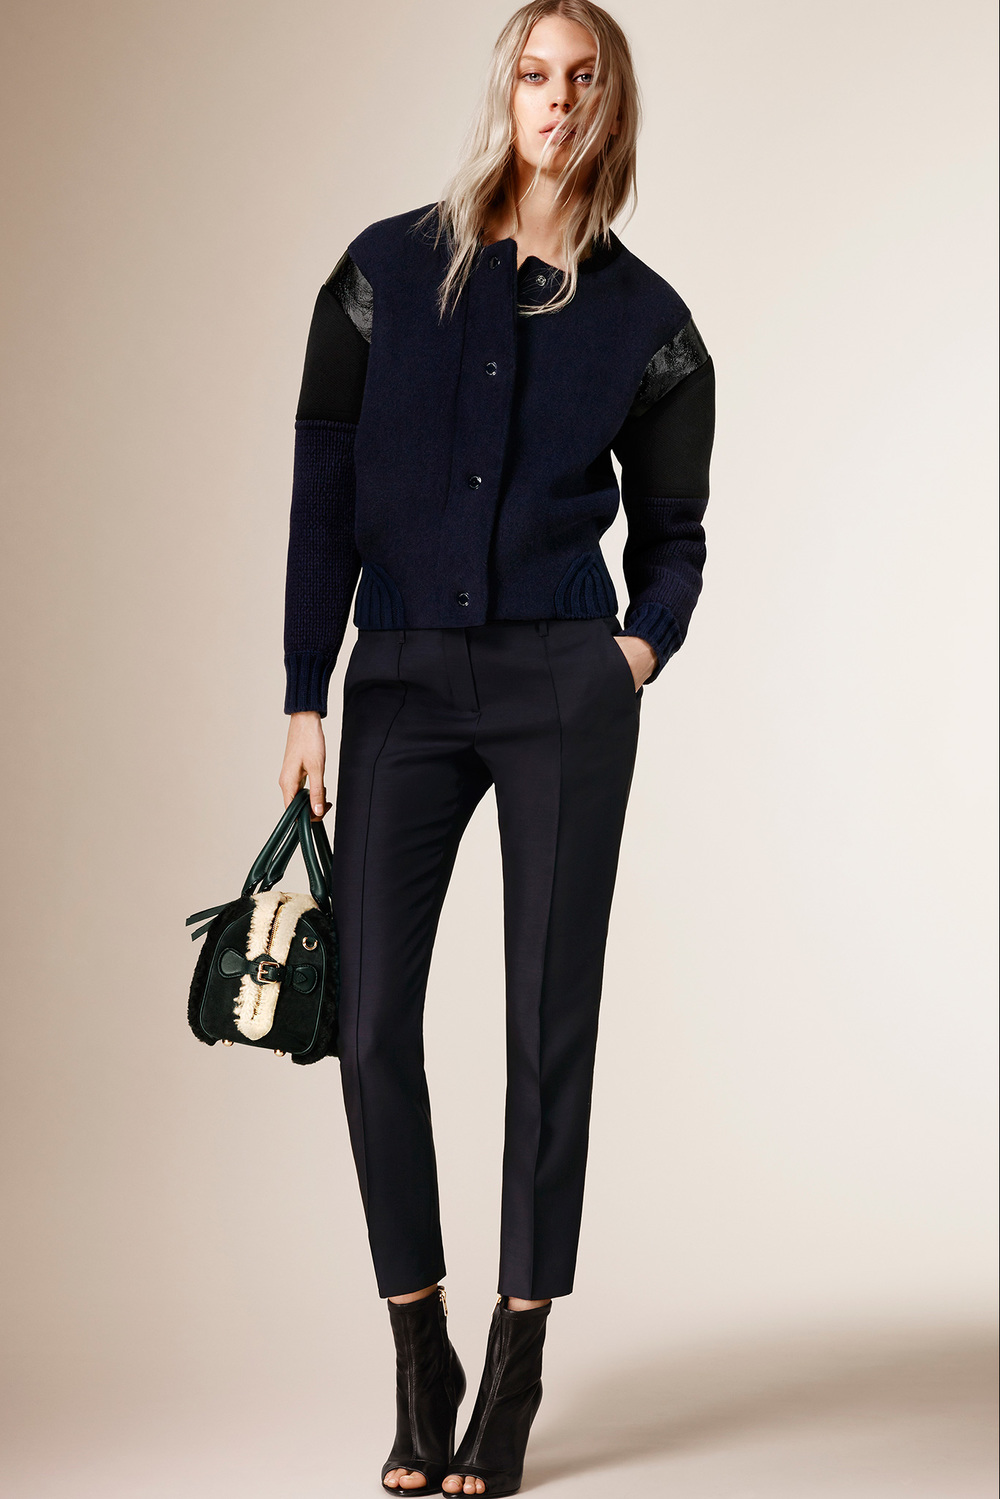 ROSE & IVY JOURNAL BURBERRY PRORSUM PRE FALL 2015